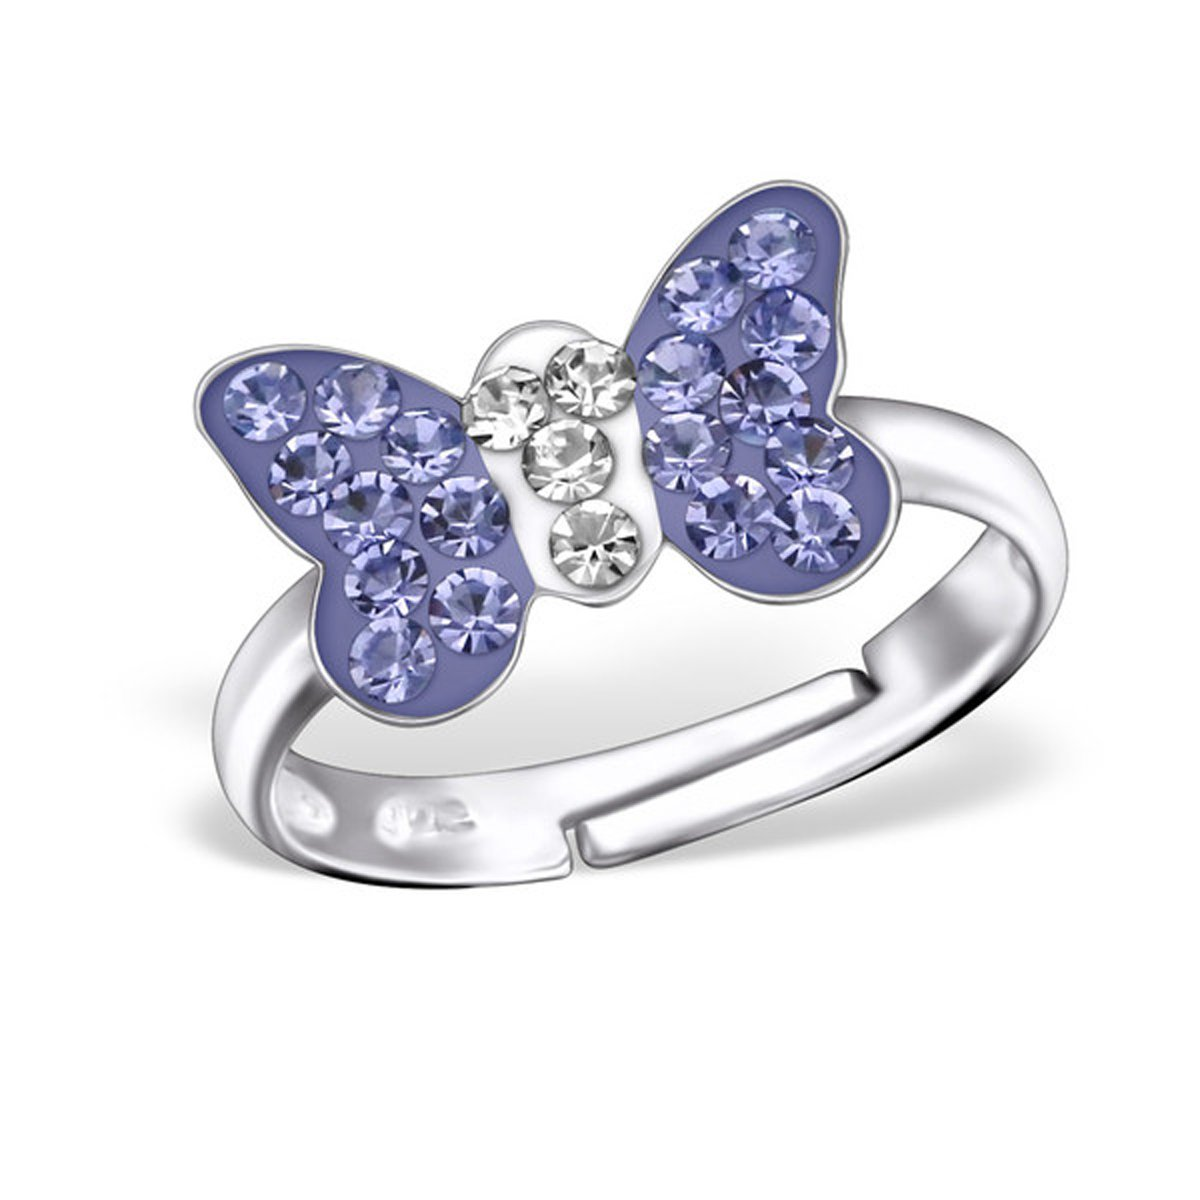 Crystal Butterfly Ring Size Adjustable 3-4 Girls Sterling Silver 925 (28180 Tanzanite)